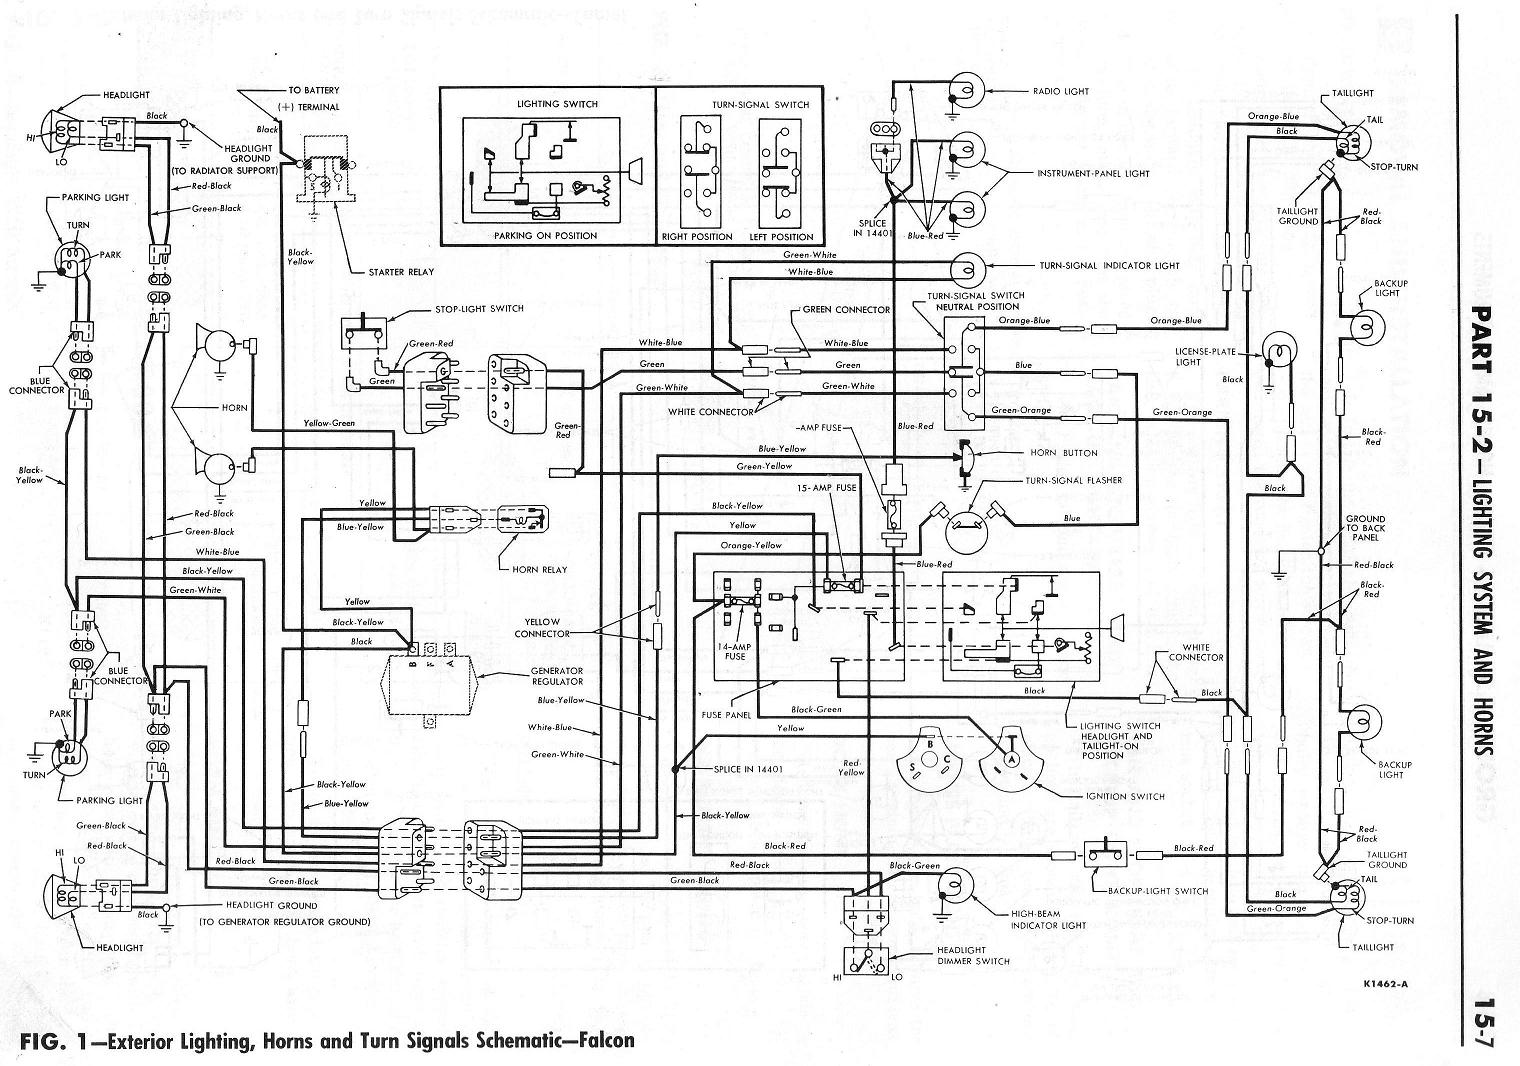 Strange 1964 Falcon Wiring Diagram Wiring Diagram Database Wiring Cloud Intelaidewilluminateatxorg